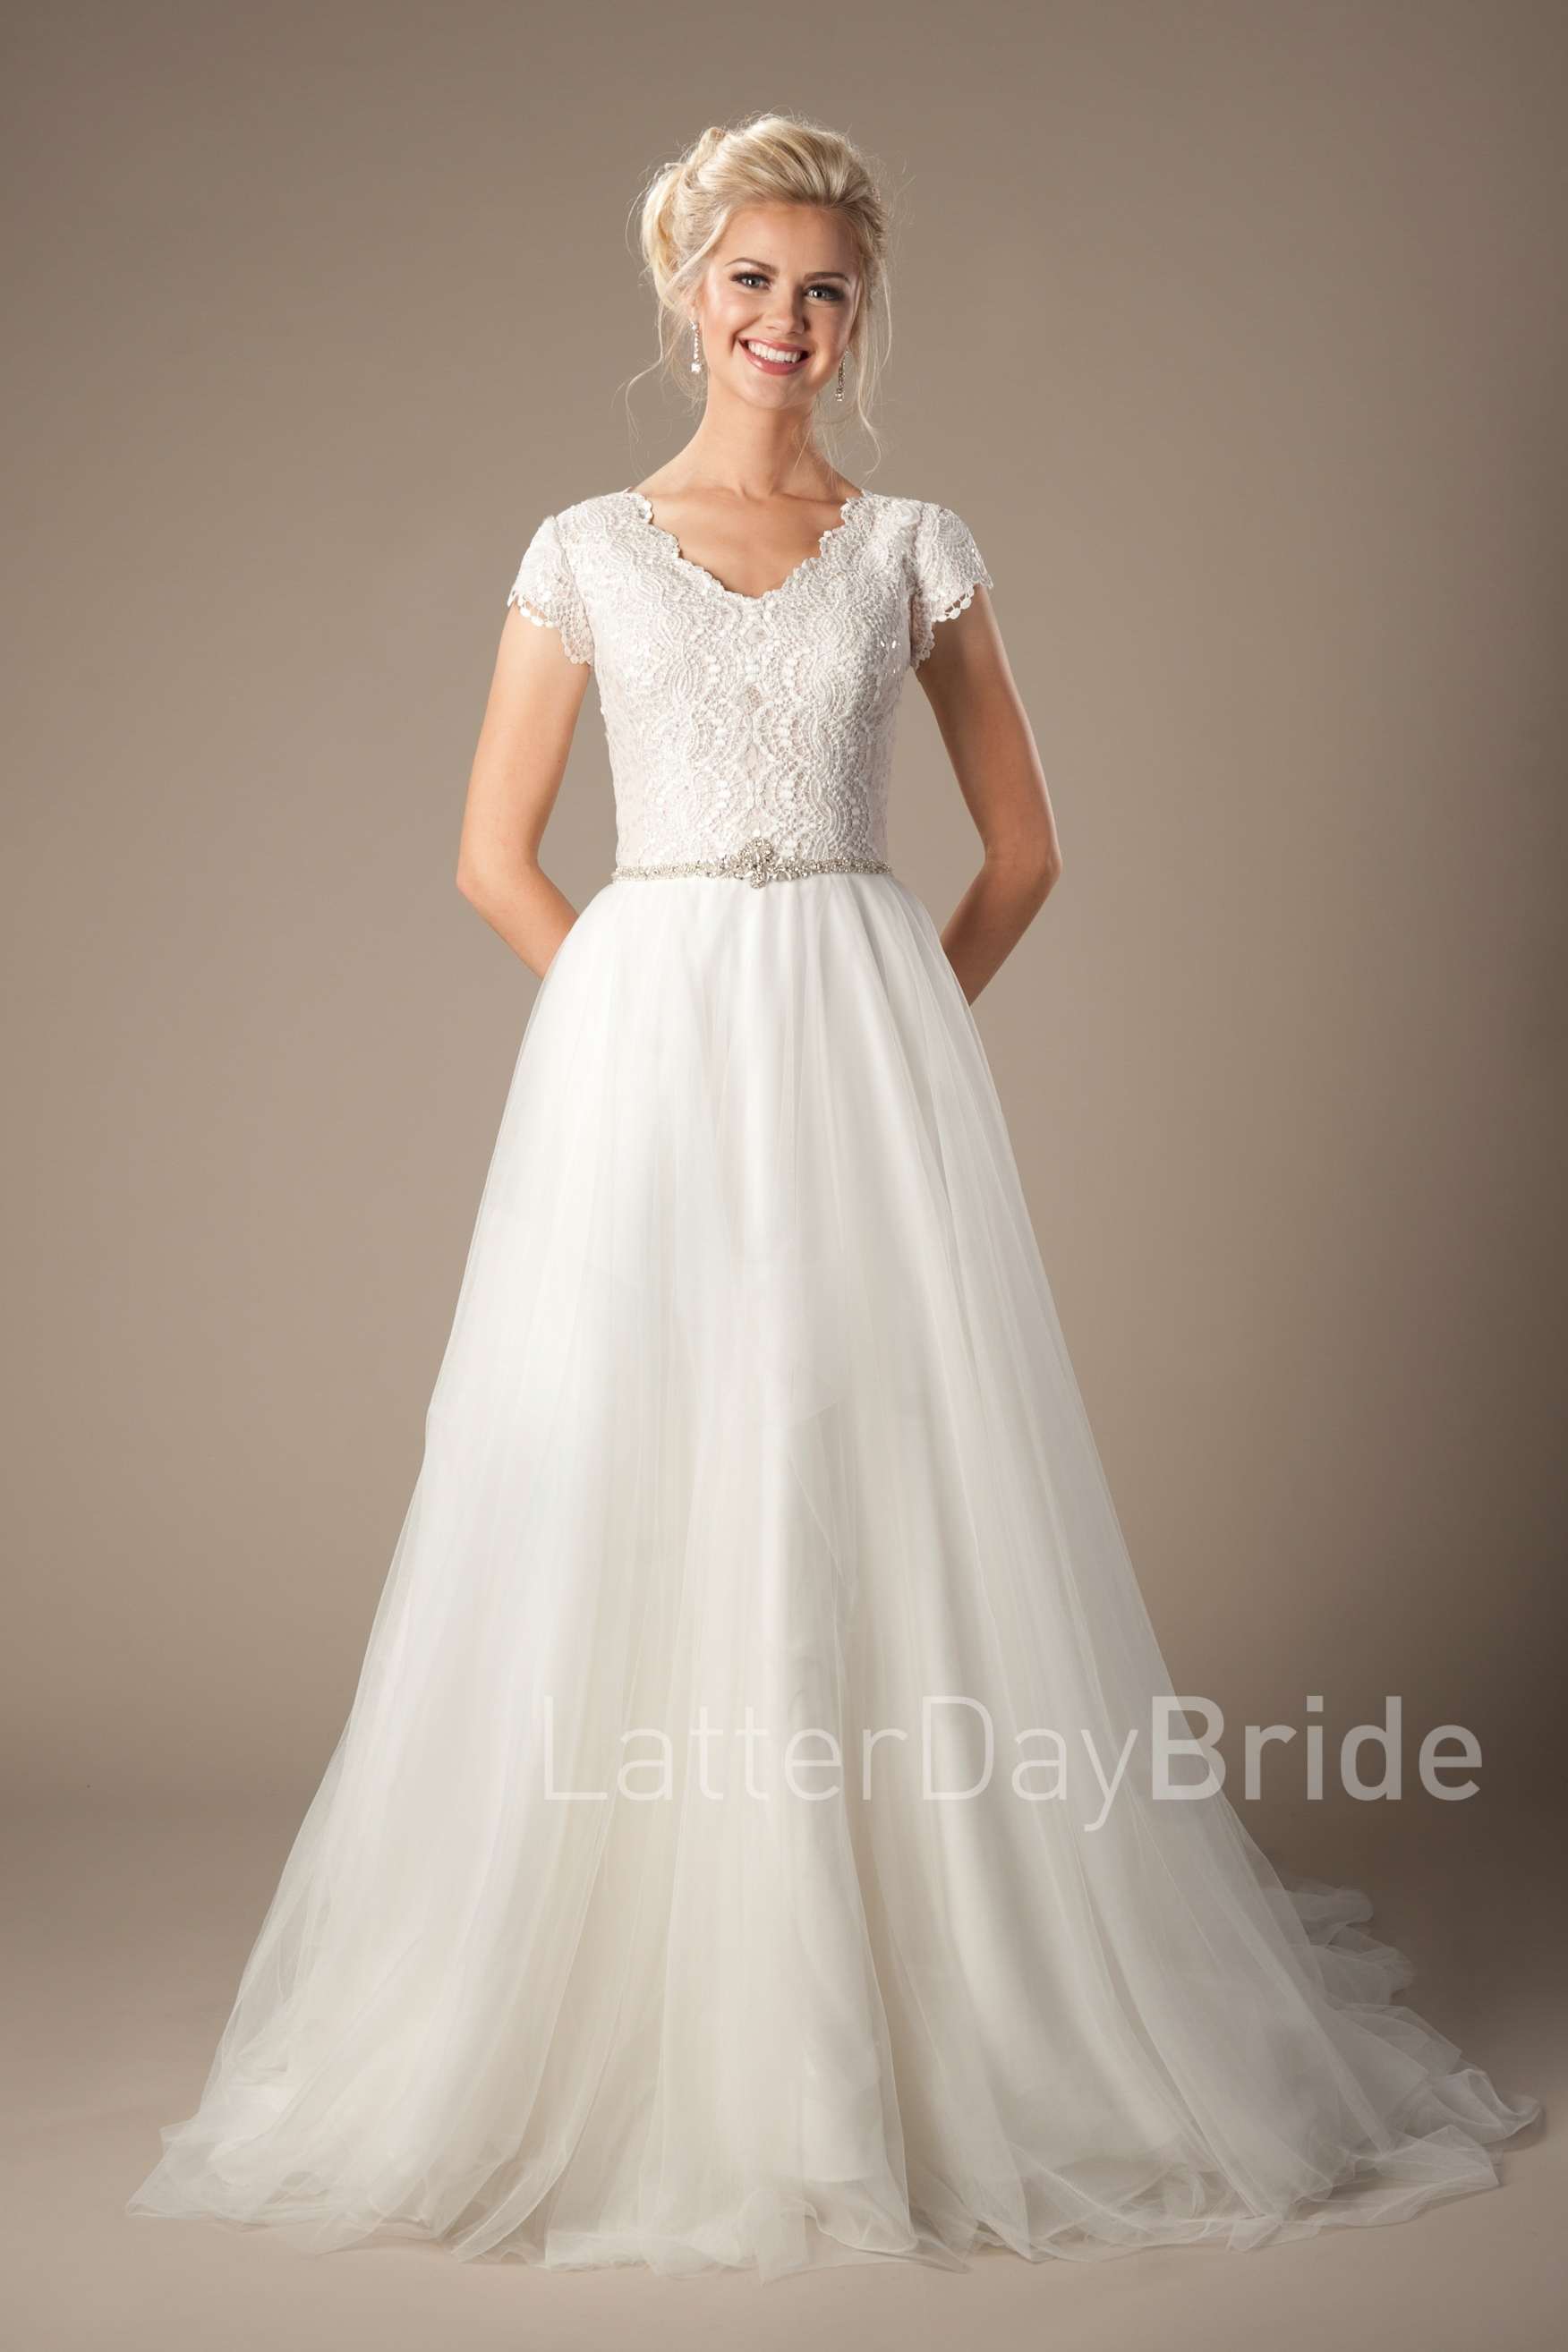 wedding dresses for tall brides photo - 1